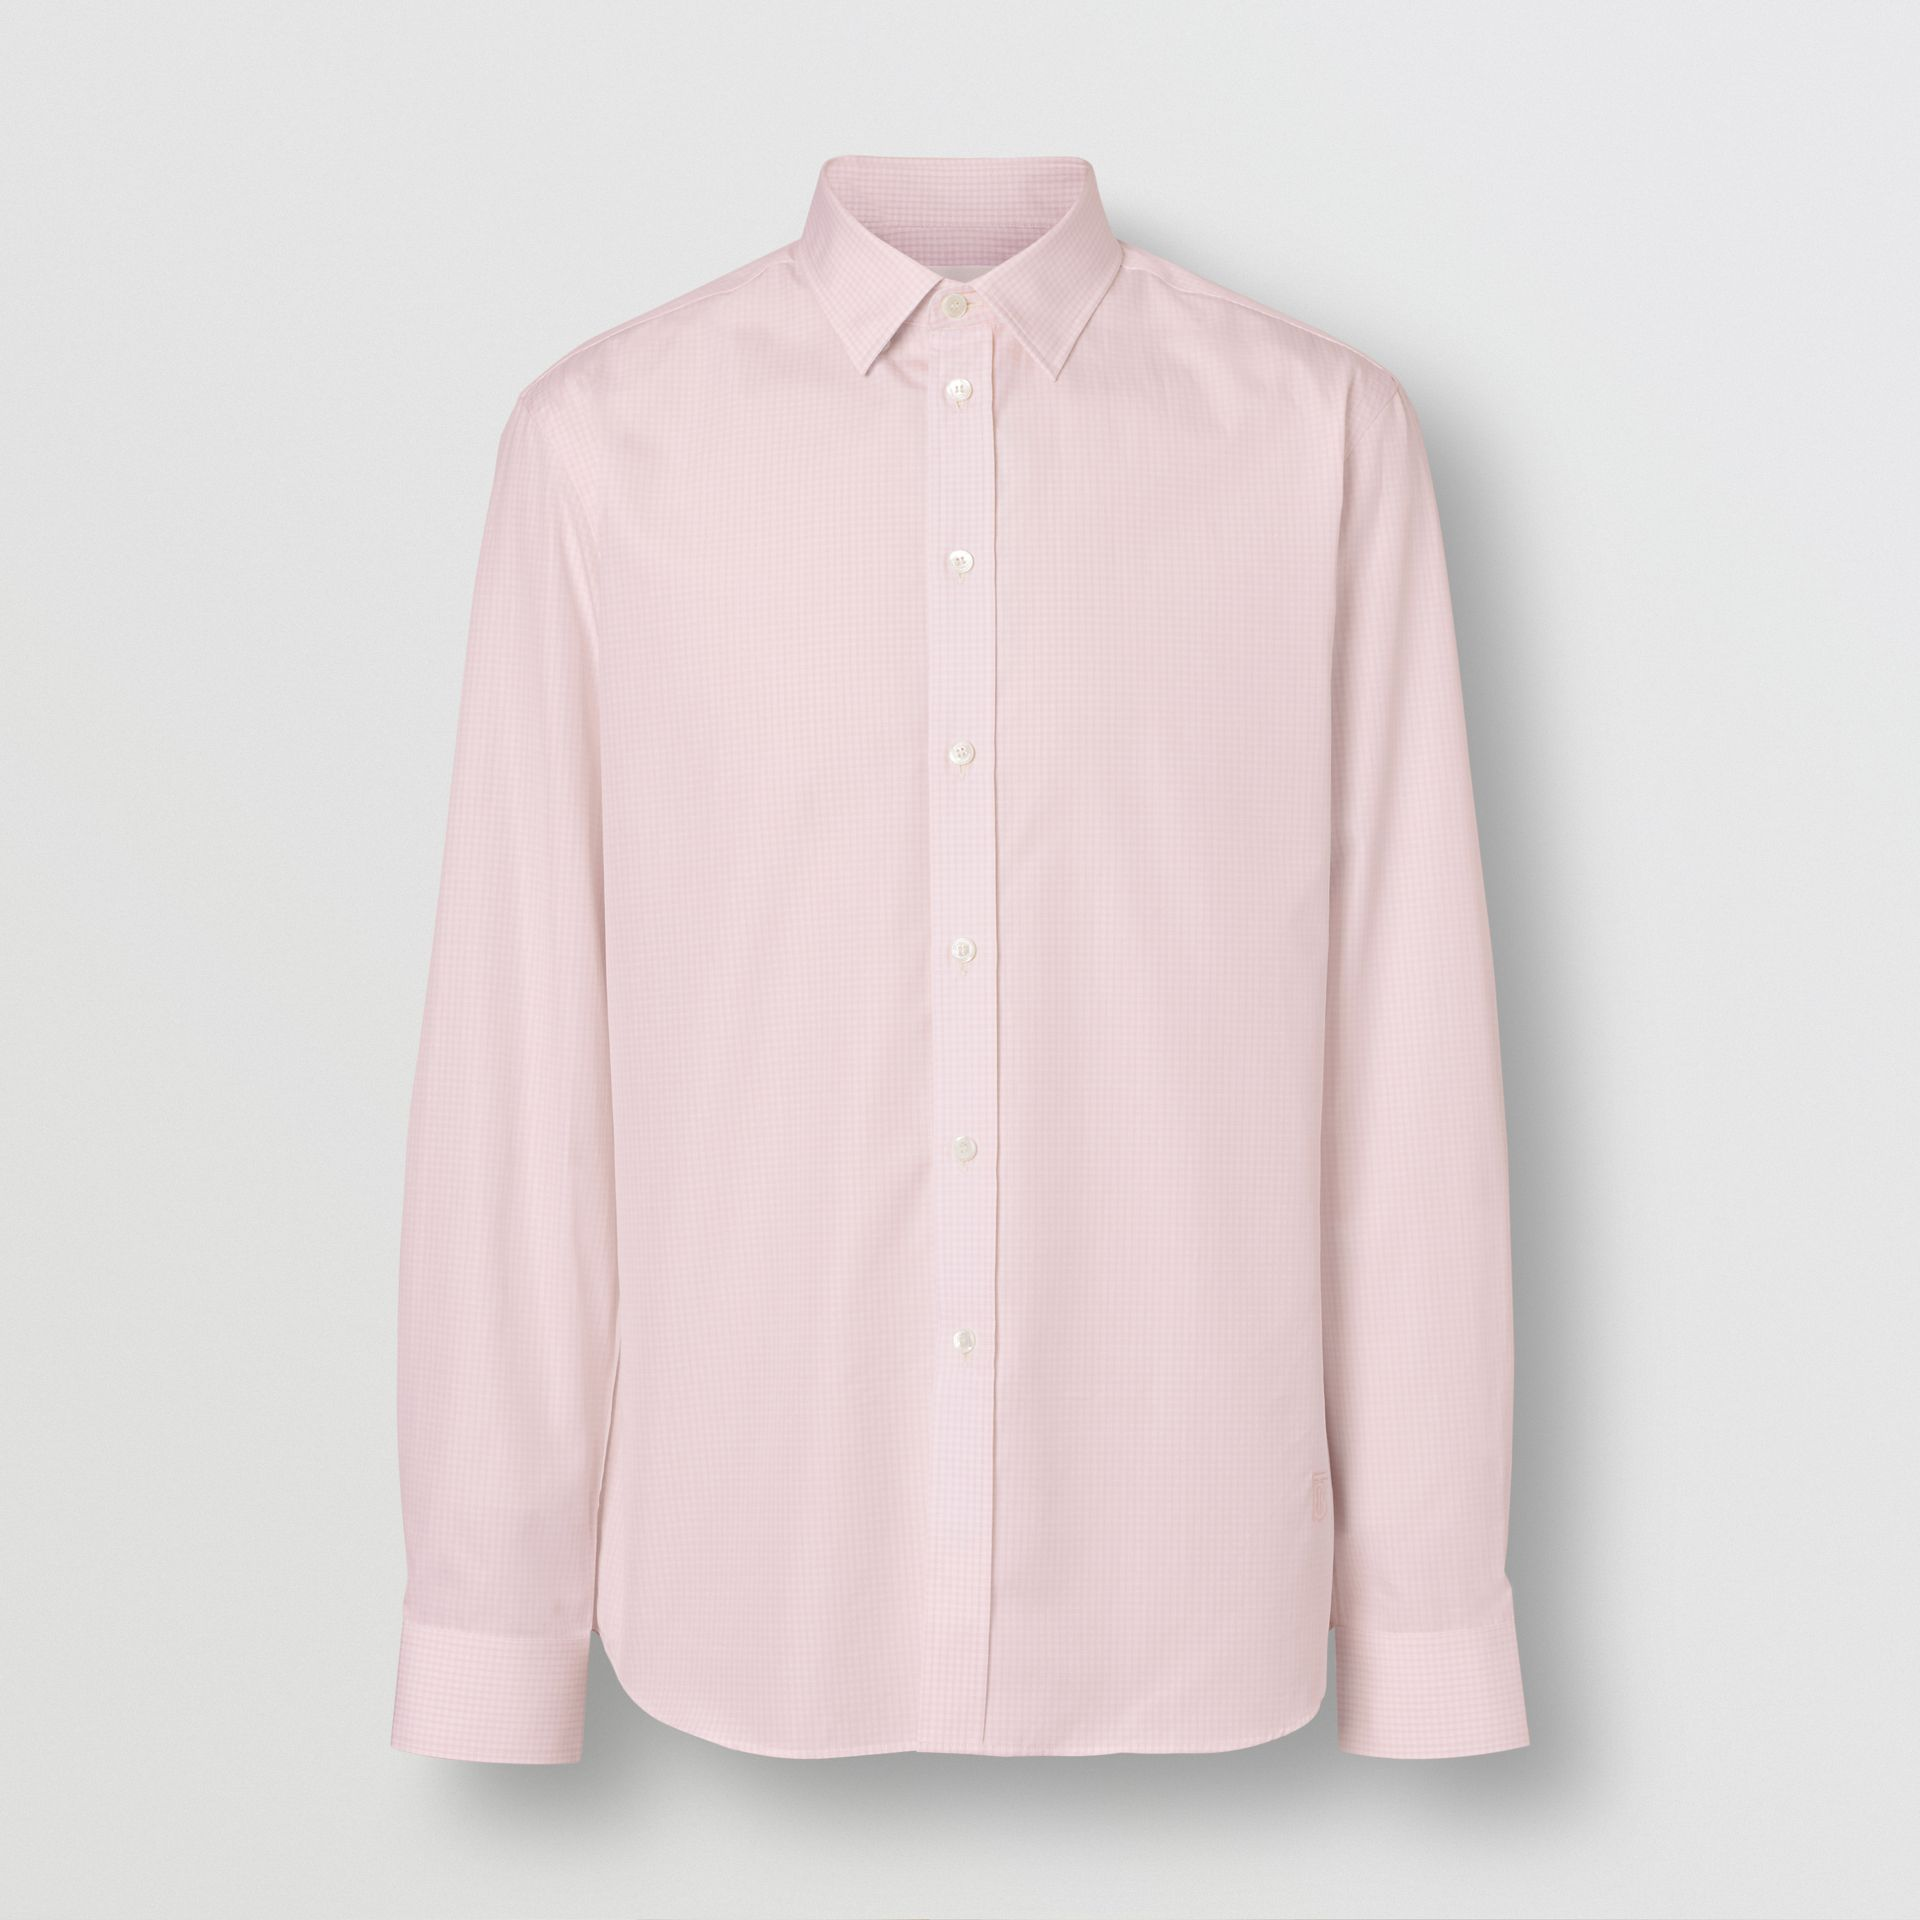 Slim Fit Micro Check Cotton Poplin Shirt in Alabaster Pink - Men | Burberry - gallery image 3